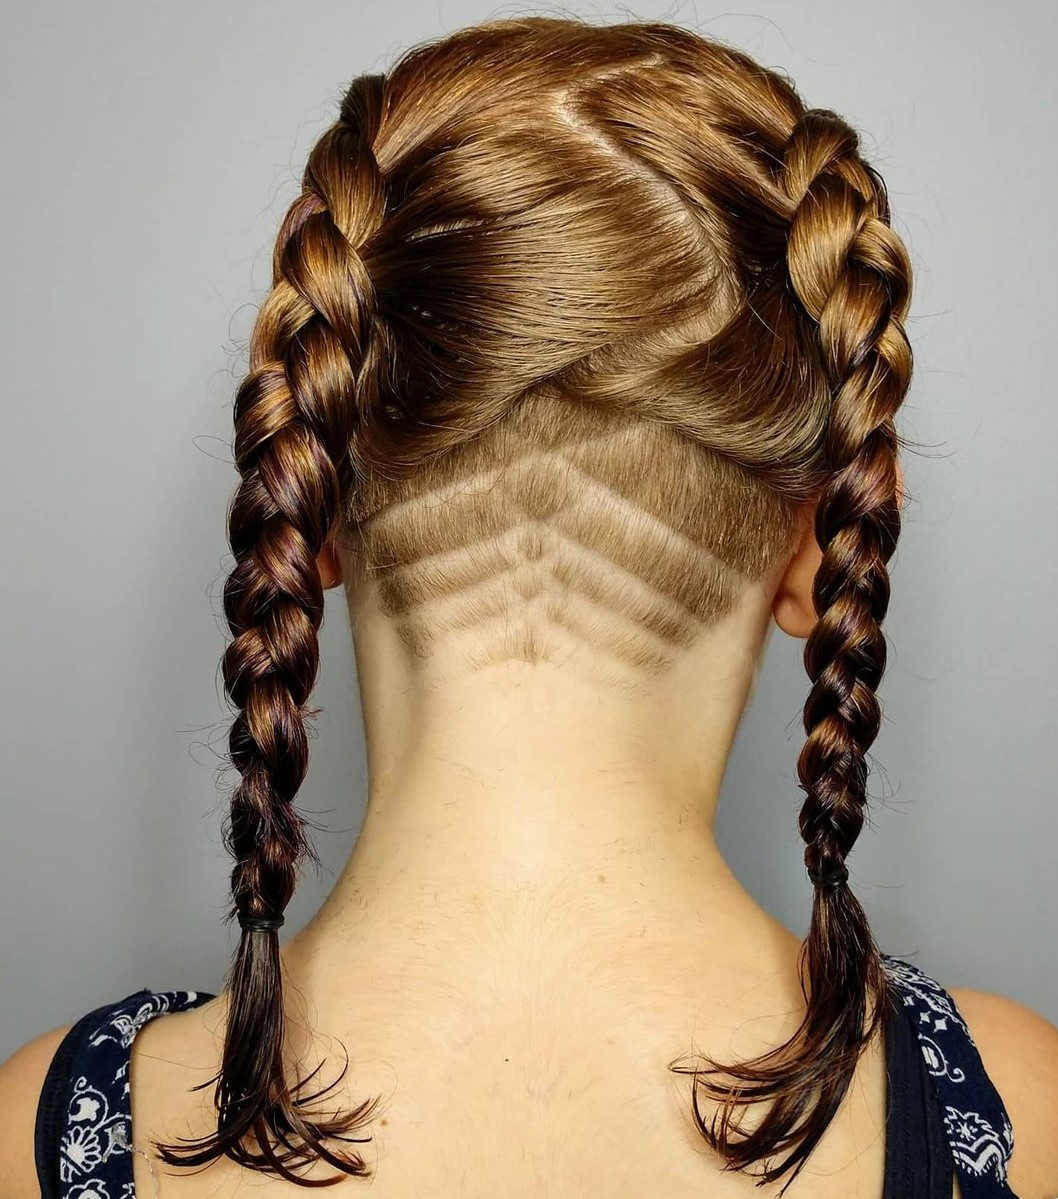 Hairstyle with Braids and Shaved Nape